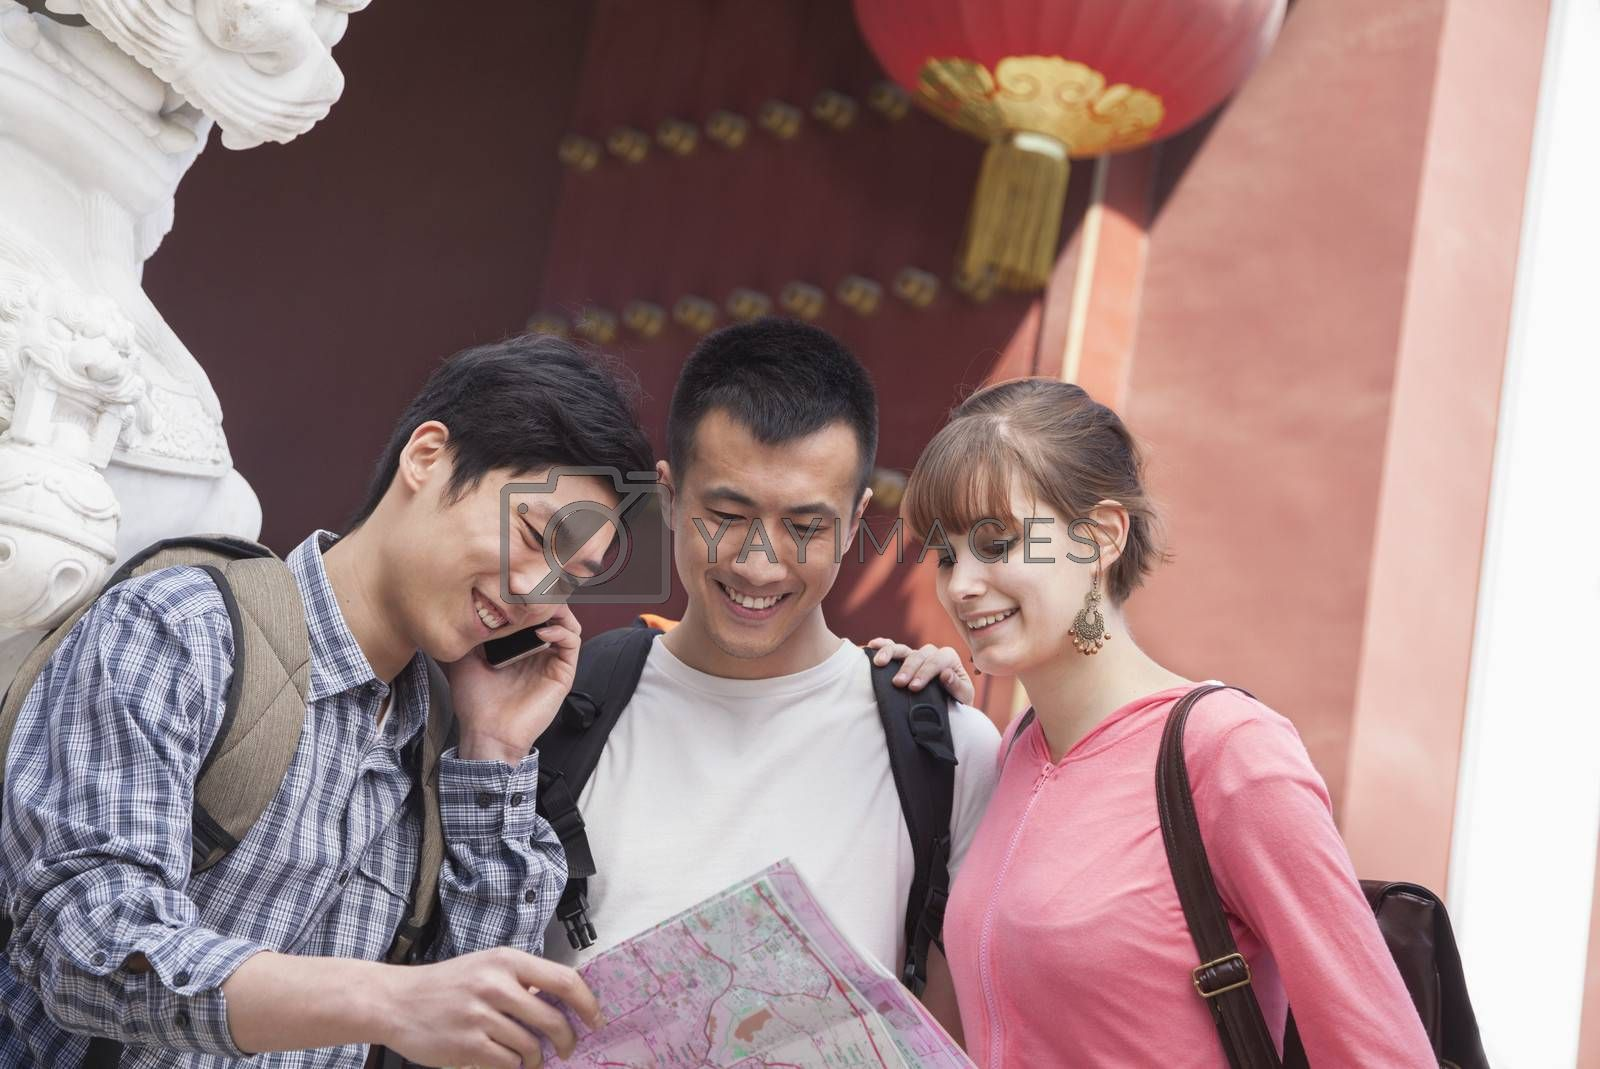 Three people looking at map.